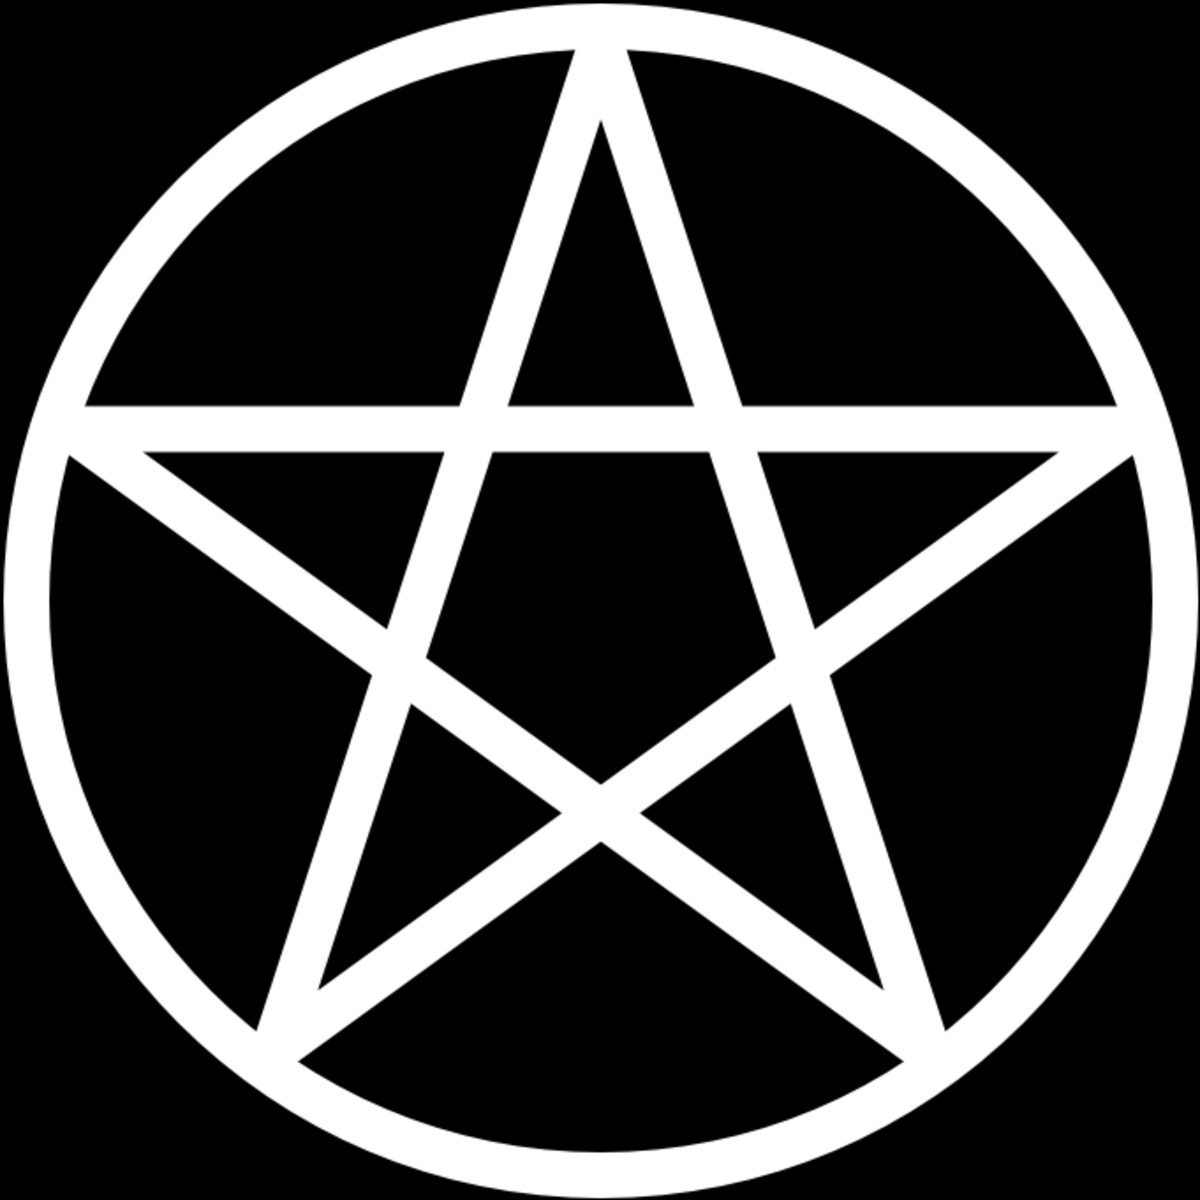 The pentagram is most often associated with neo-Paganism but it was used in many different traditions including Christian magic.